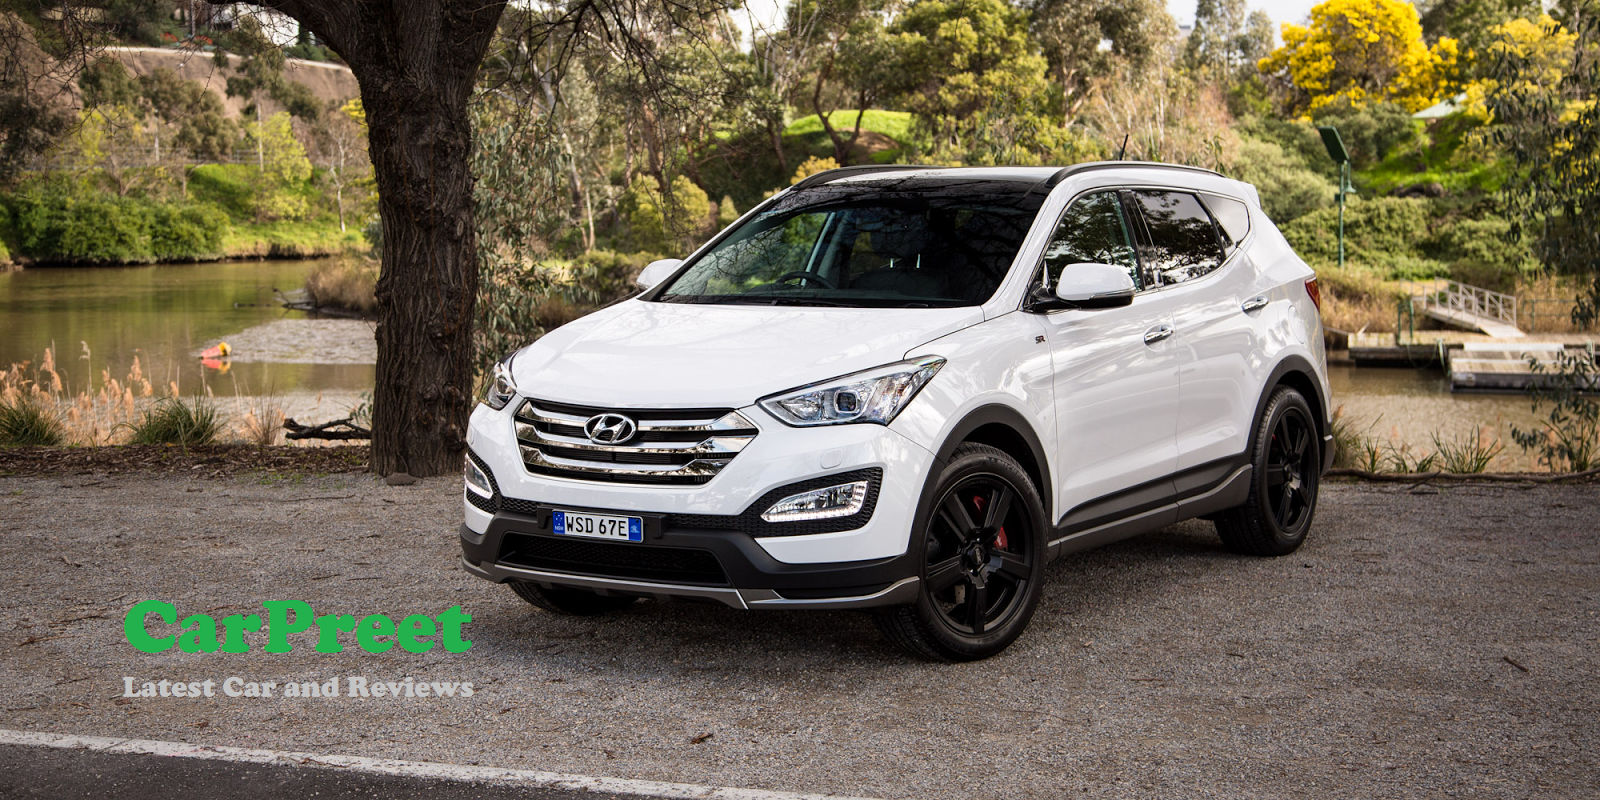 2016 Hyundai Santa Fe Sr Review The Has Turned Into An Exceedingly Respected Family Suv However Is There Truly Such In Number Get Out